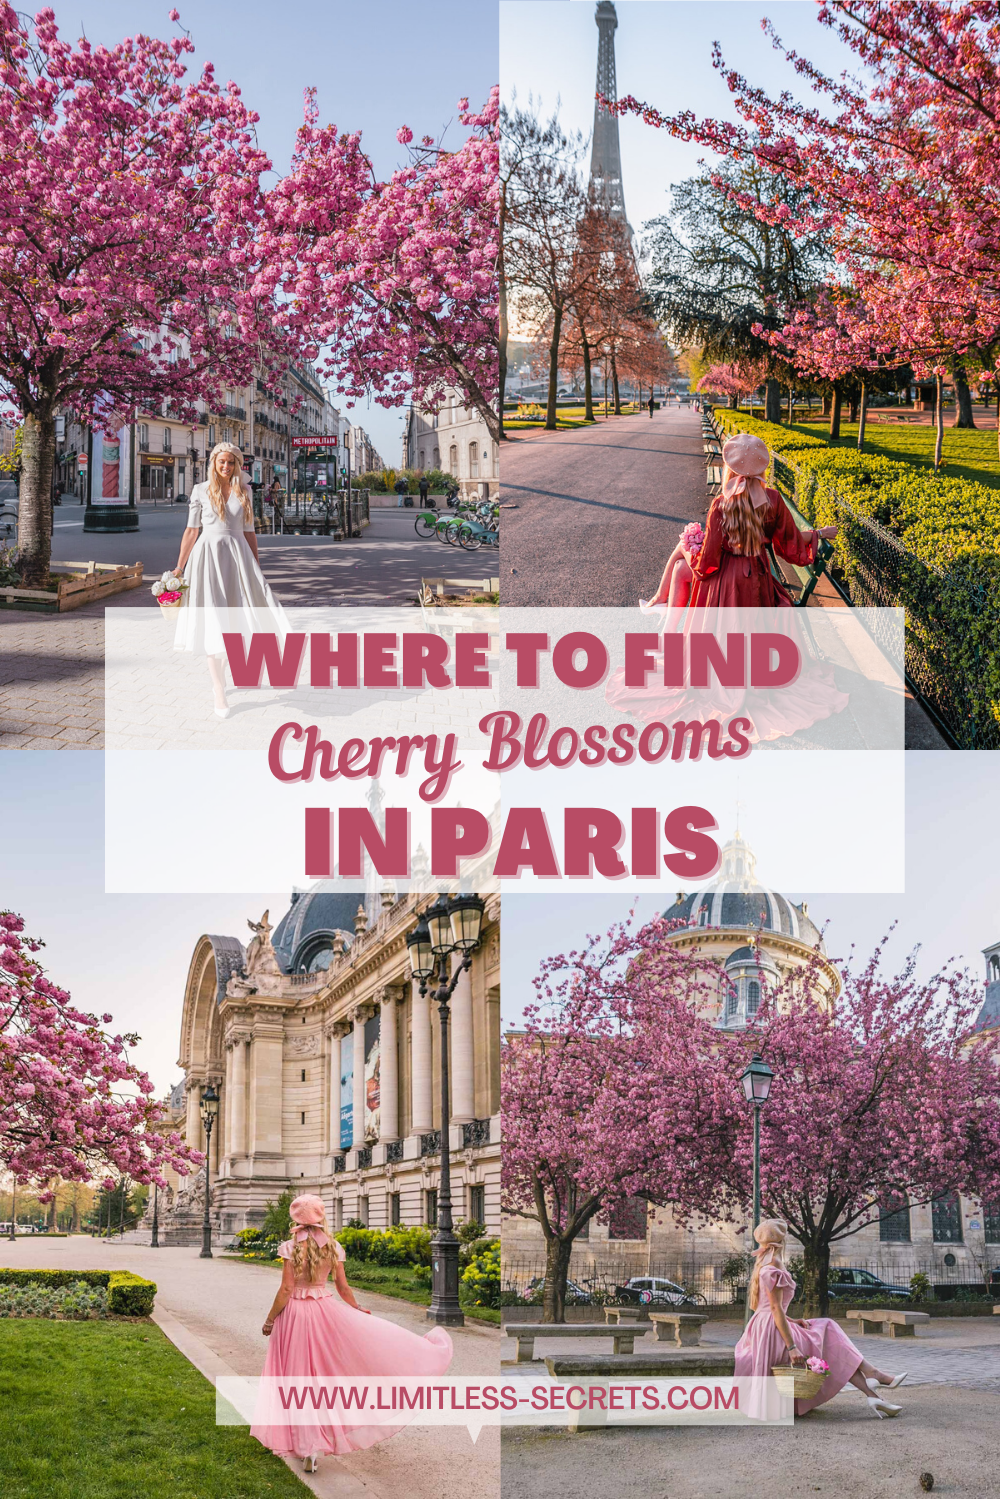 I have gathered for you all the best places to see the cherry blossoms in Paris! Paris in spring is like a fairy tale! And you will find all the information to enjoy it fully in this guide about Spring in Paris! #paris #cherryblossoms #spring #sakura Paris travel guides | Paris in spring | Where to see flowers in Paris | most instagrammable places in Paris | Where to find the best cherry blossoms in Paris